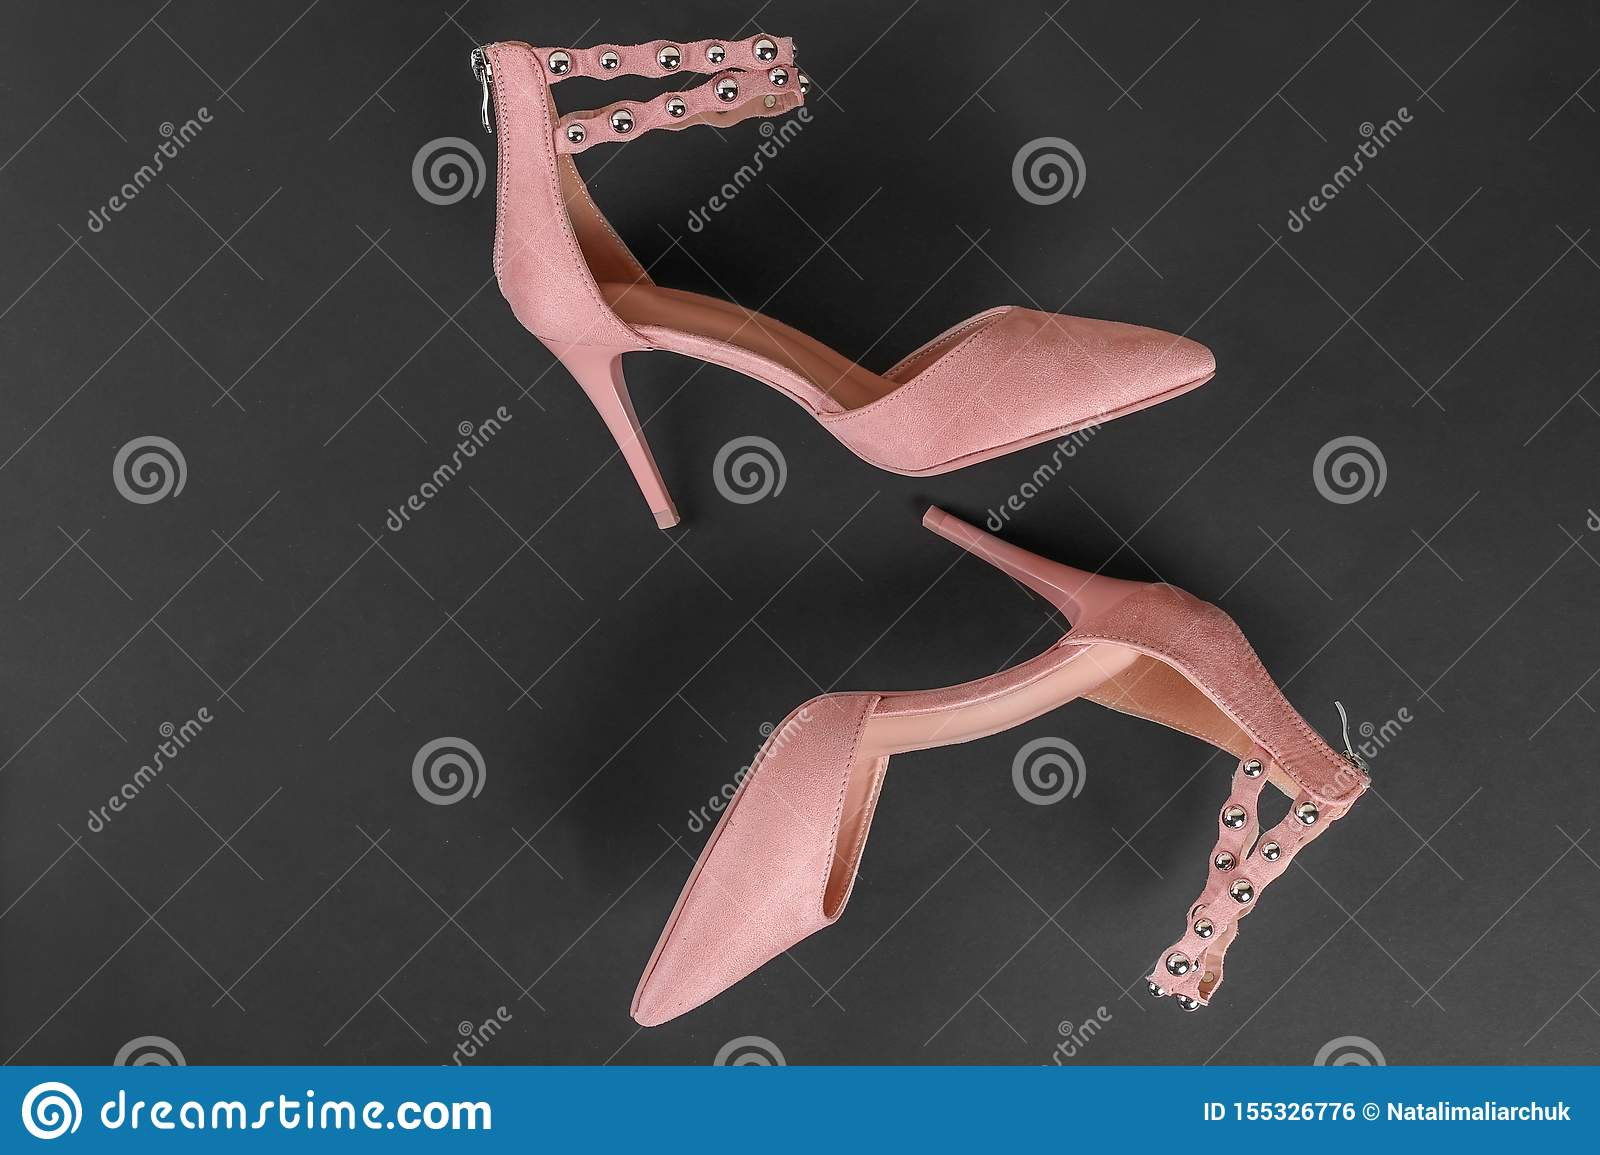 Stylish summer sandals of pastel color on black background, close up. Top view. Flat lay